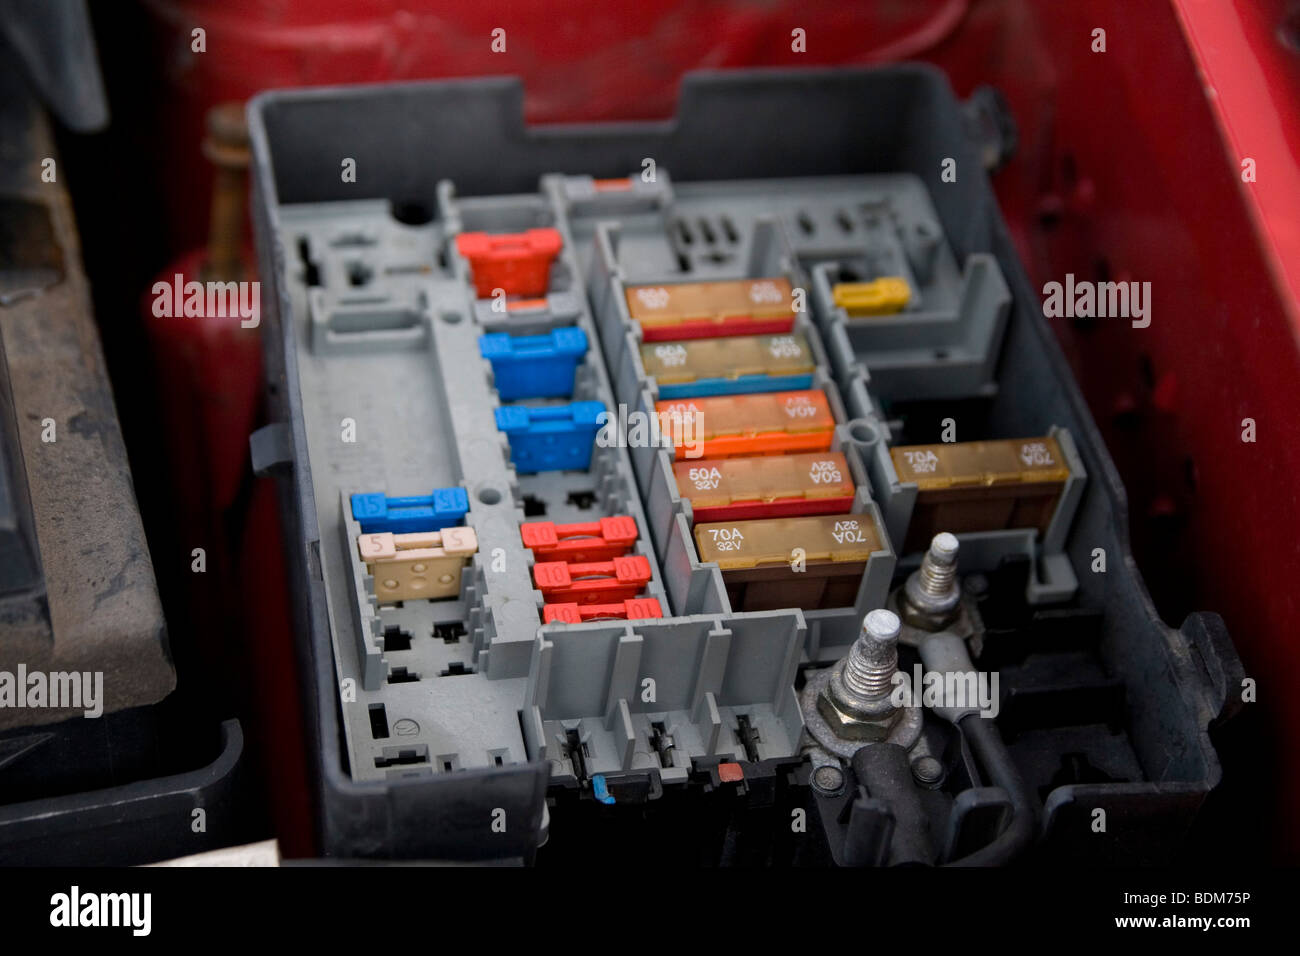 citroen berlingo fuse box diagram wiring wiring library citroen saxo rice citroen berlingo fuse box diagram wiring